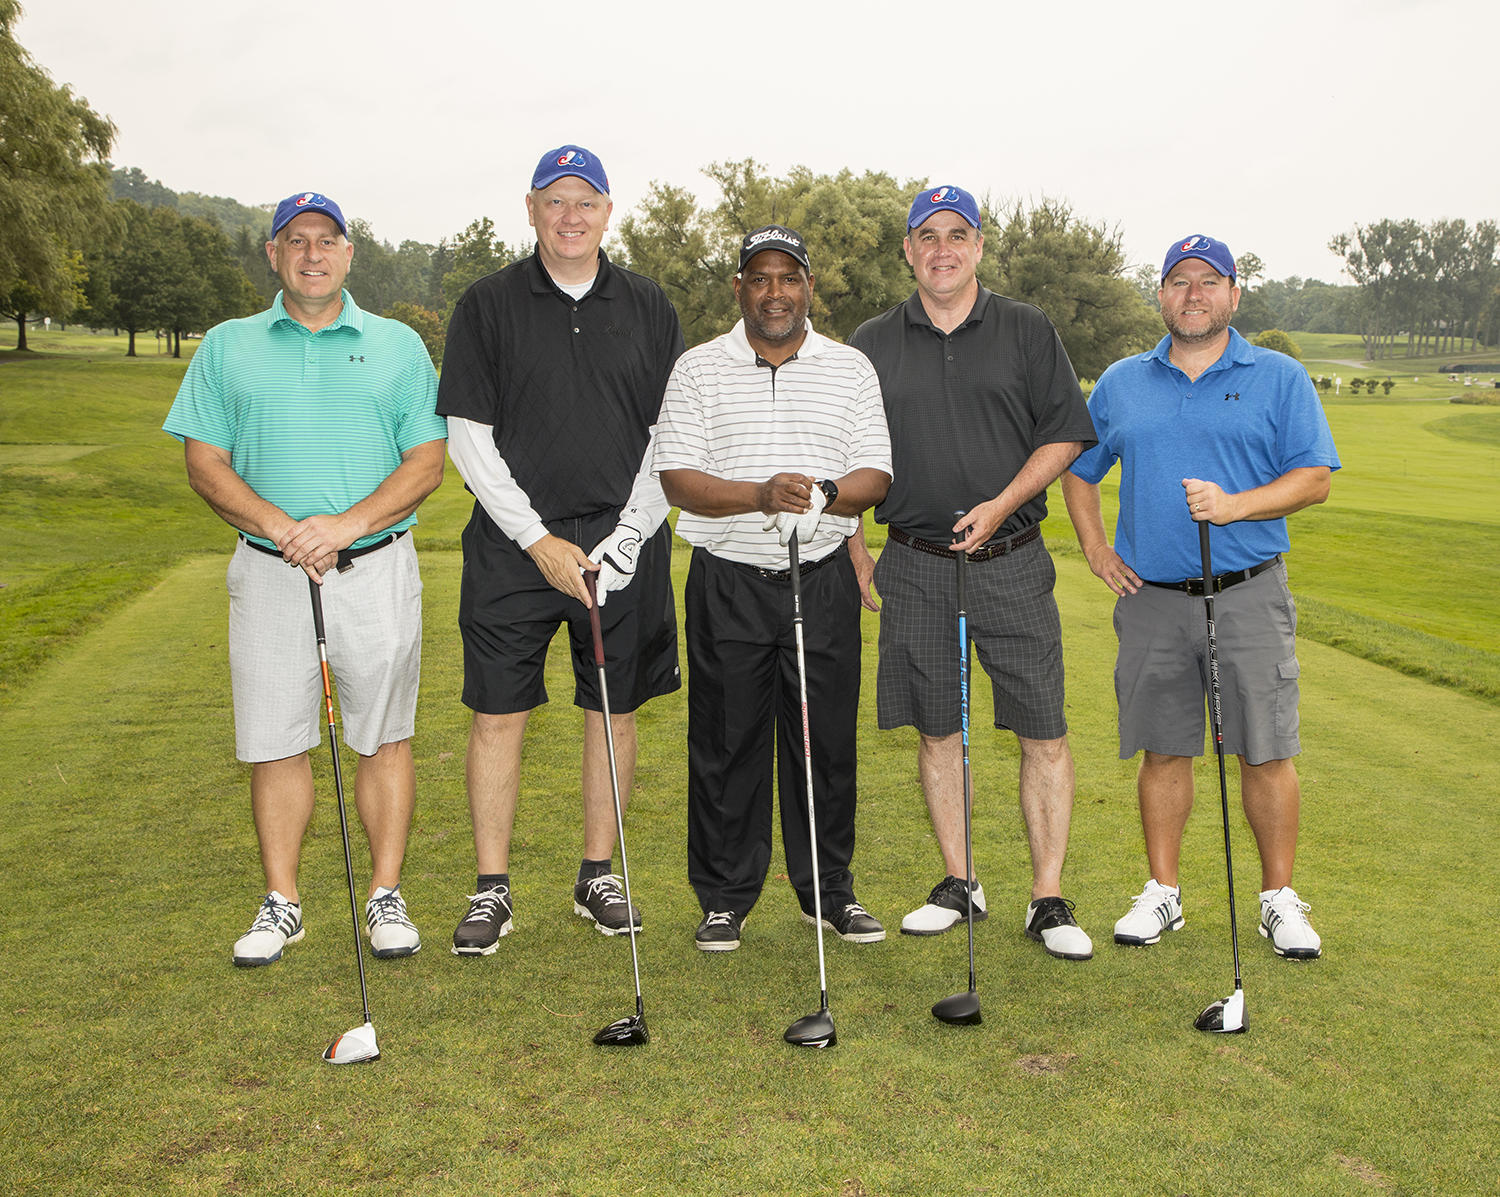 Hall of Famer Tim Raines served as host of the 35th annual Otesaga Hotel Seniors Open Pro-Am. (By Photographer Milo Stewart Jr./National Baseball Hall of Fame and Museum)